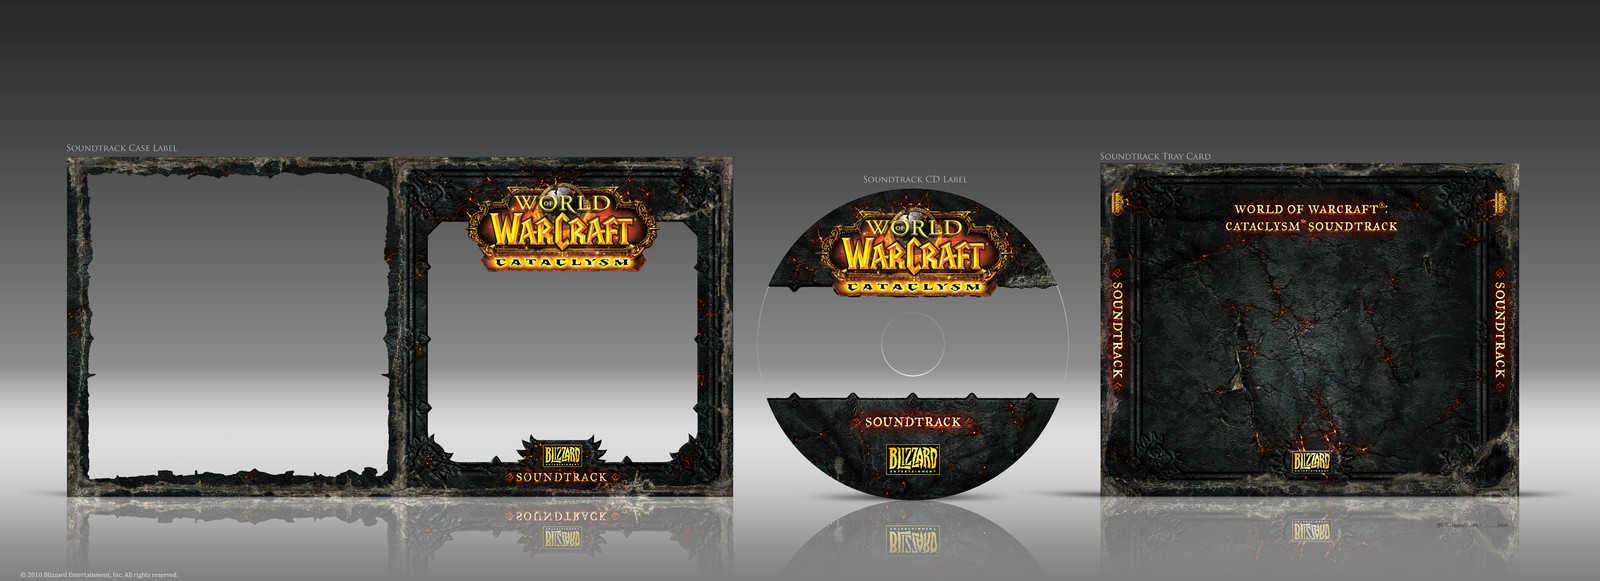 "Final Soundtrack Set Designs for ""World of Warcraft: Cataclysm"" CE Box Set"